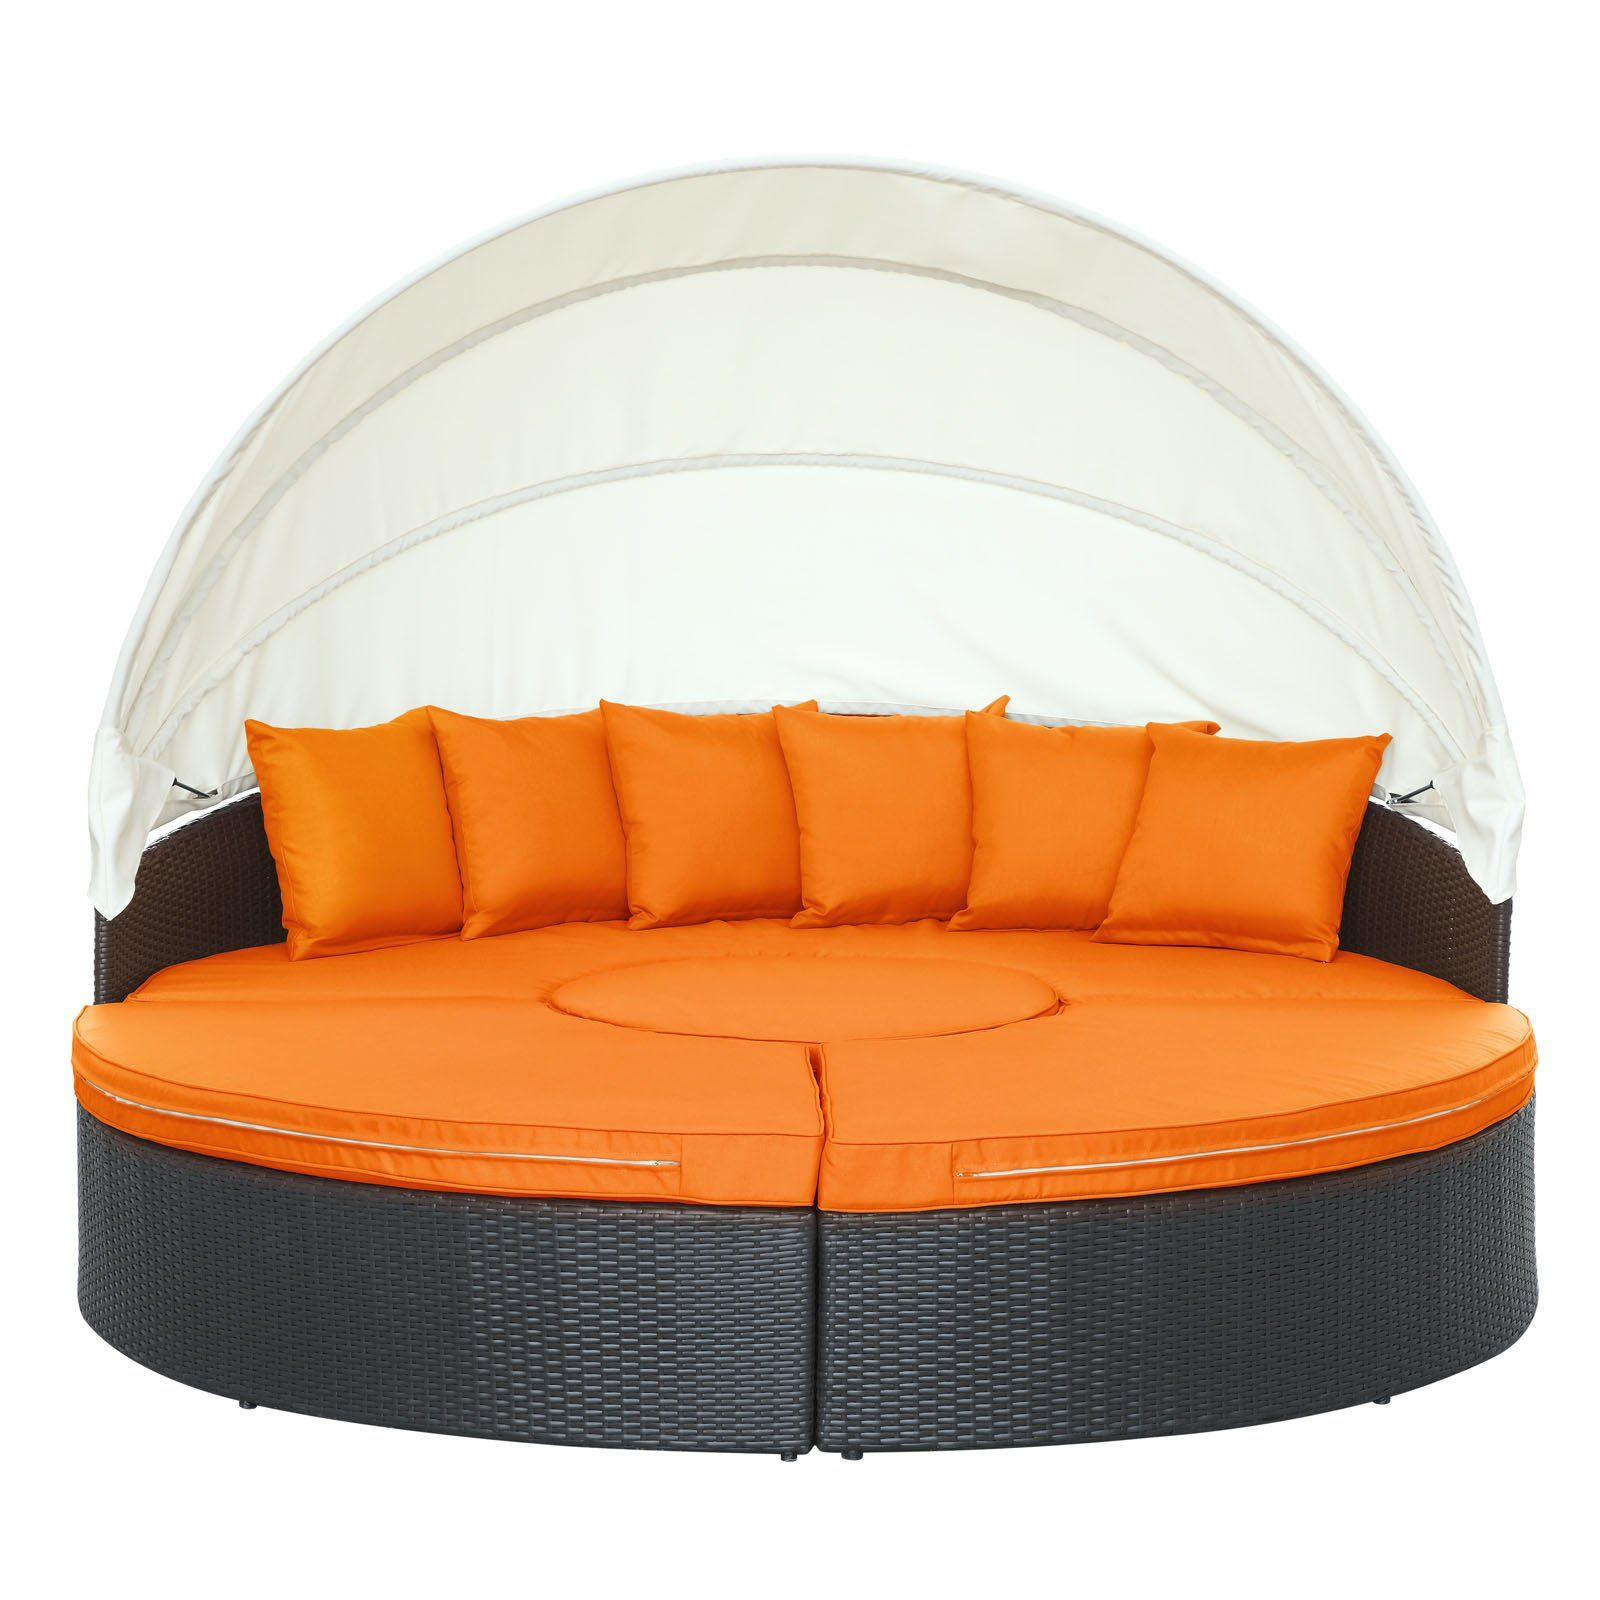 Modway Quest Circular Outdoor Wicker Rattan Patio Daybed With Canopy In Espresso Orange Be Sure To Check Out This Awes Daybed Canopy Canopy Outdoor Patio Daybed